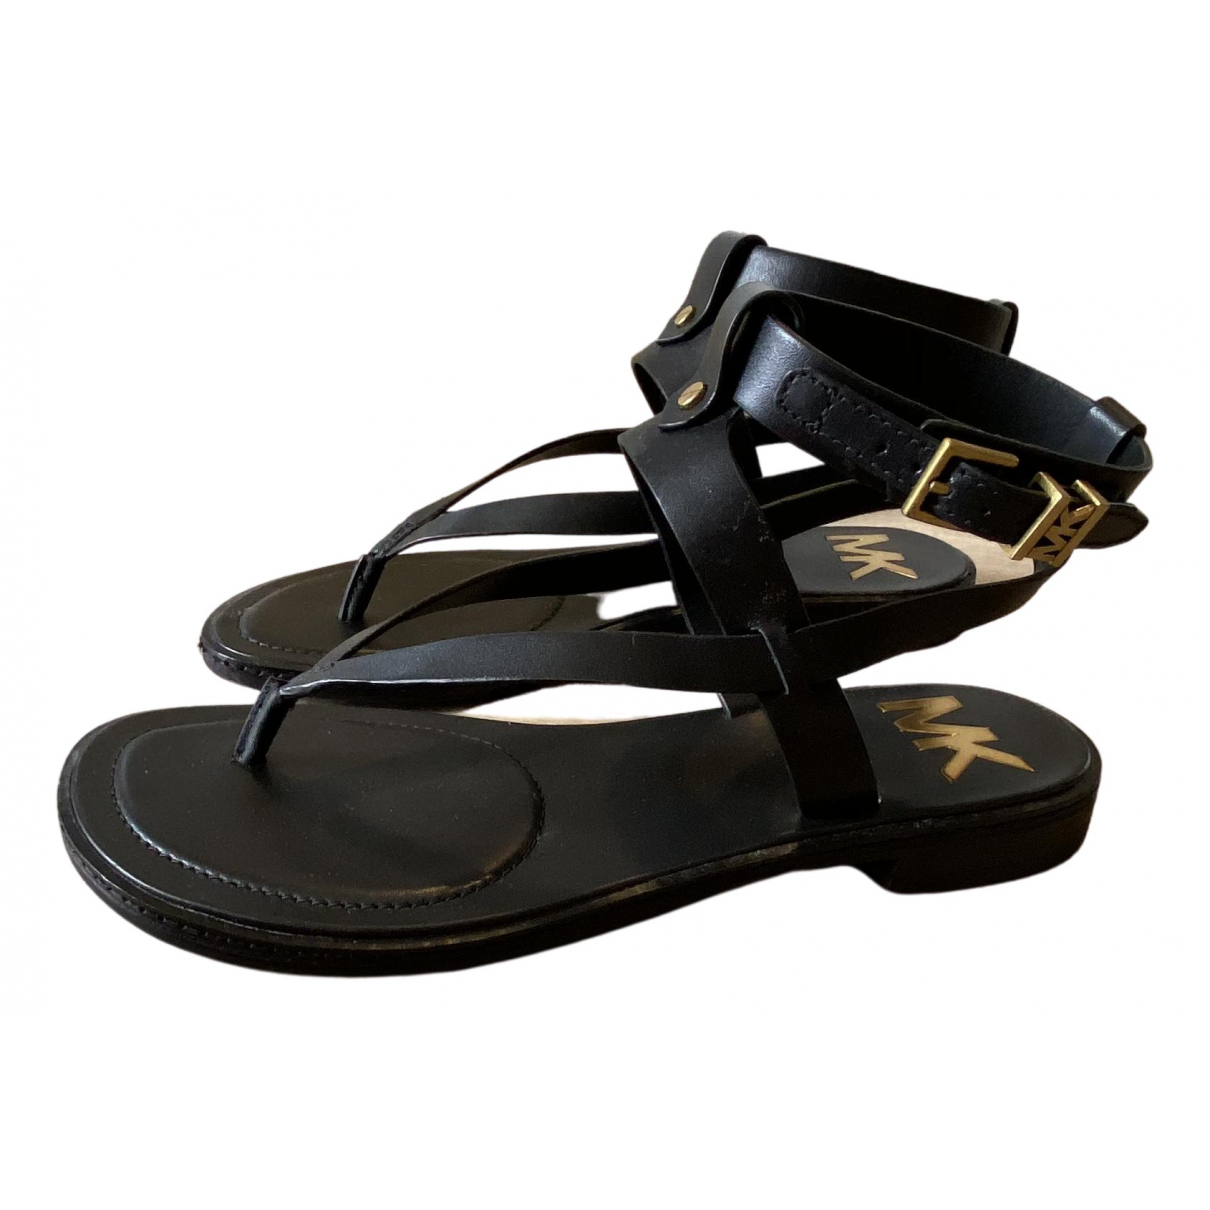 Michael Kors \N Black Leather Sandals for Women 37.5 EU